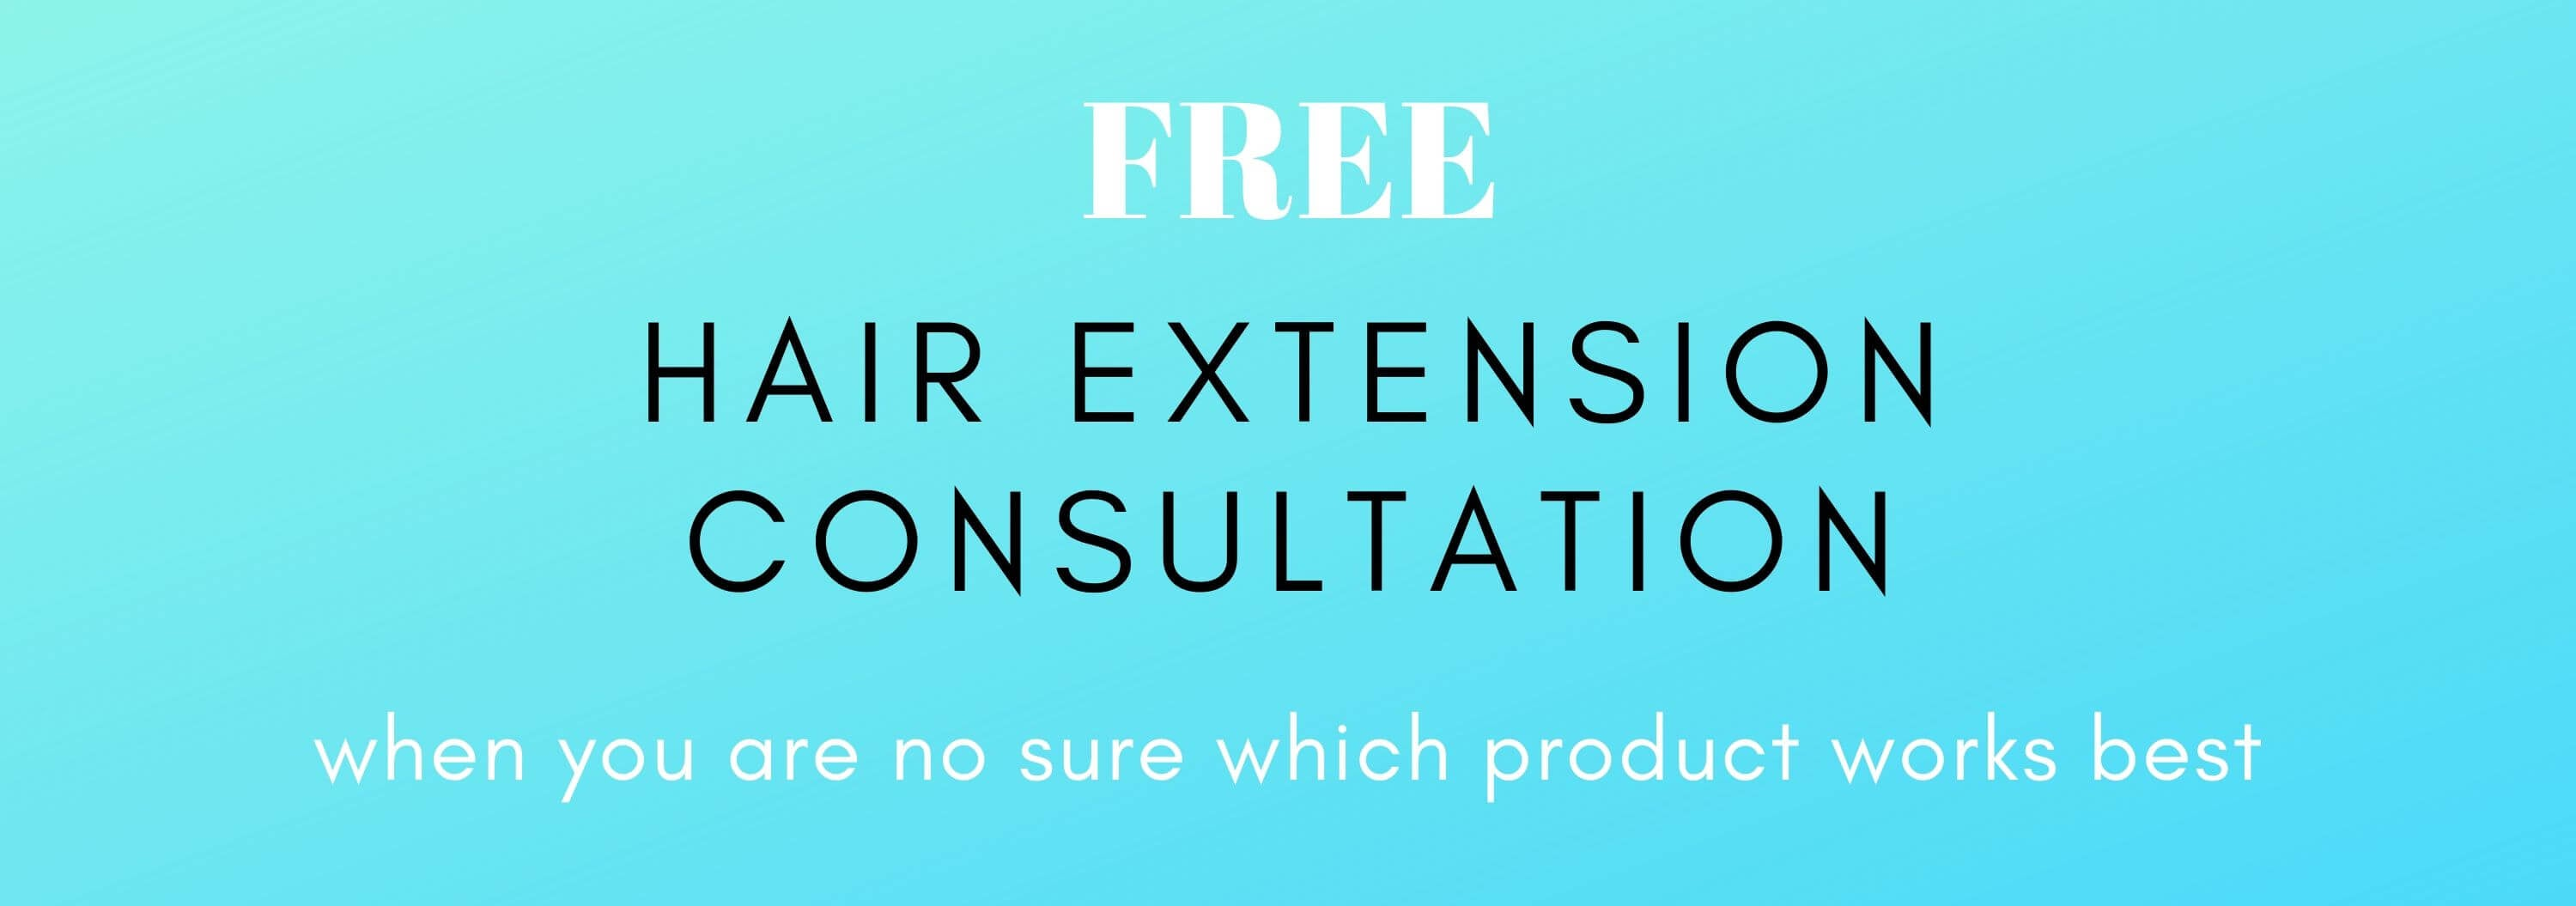 azul hair collection hair extension consultation free